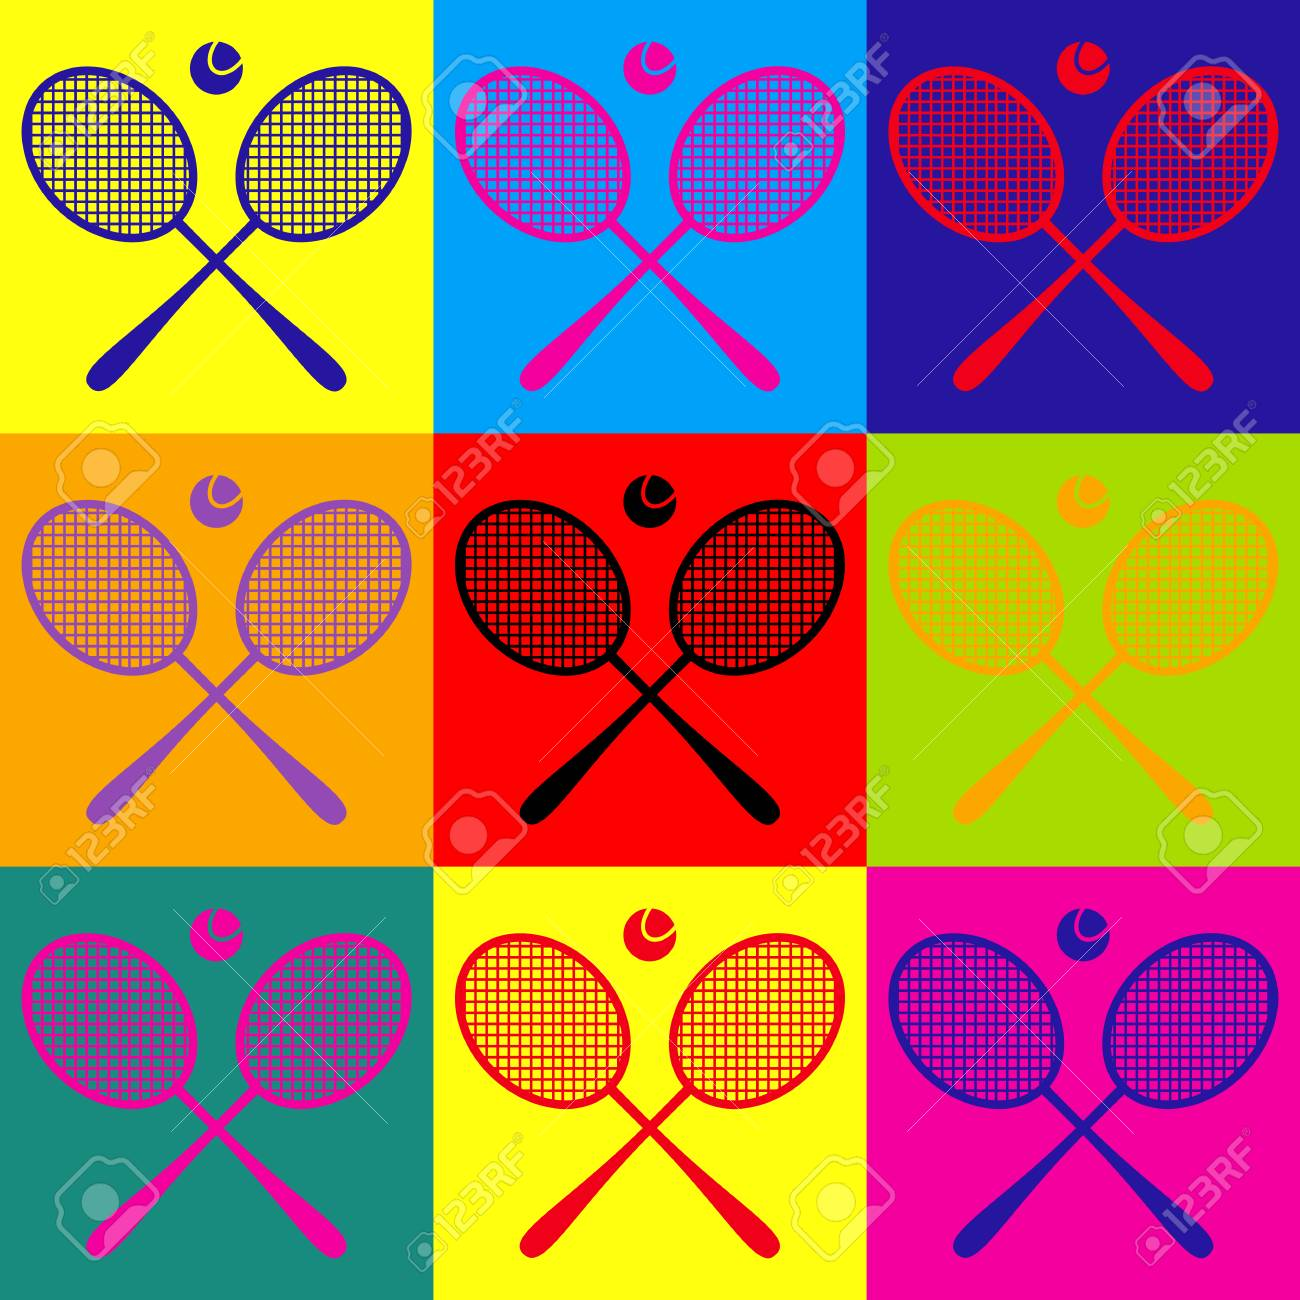 Tennis Racket Icon Pop Art Style Colorful Icons Set Royalty Free Cliparts Vectors And Stock Illustration Image 56661145